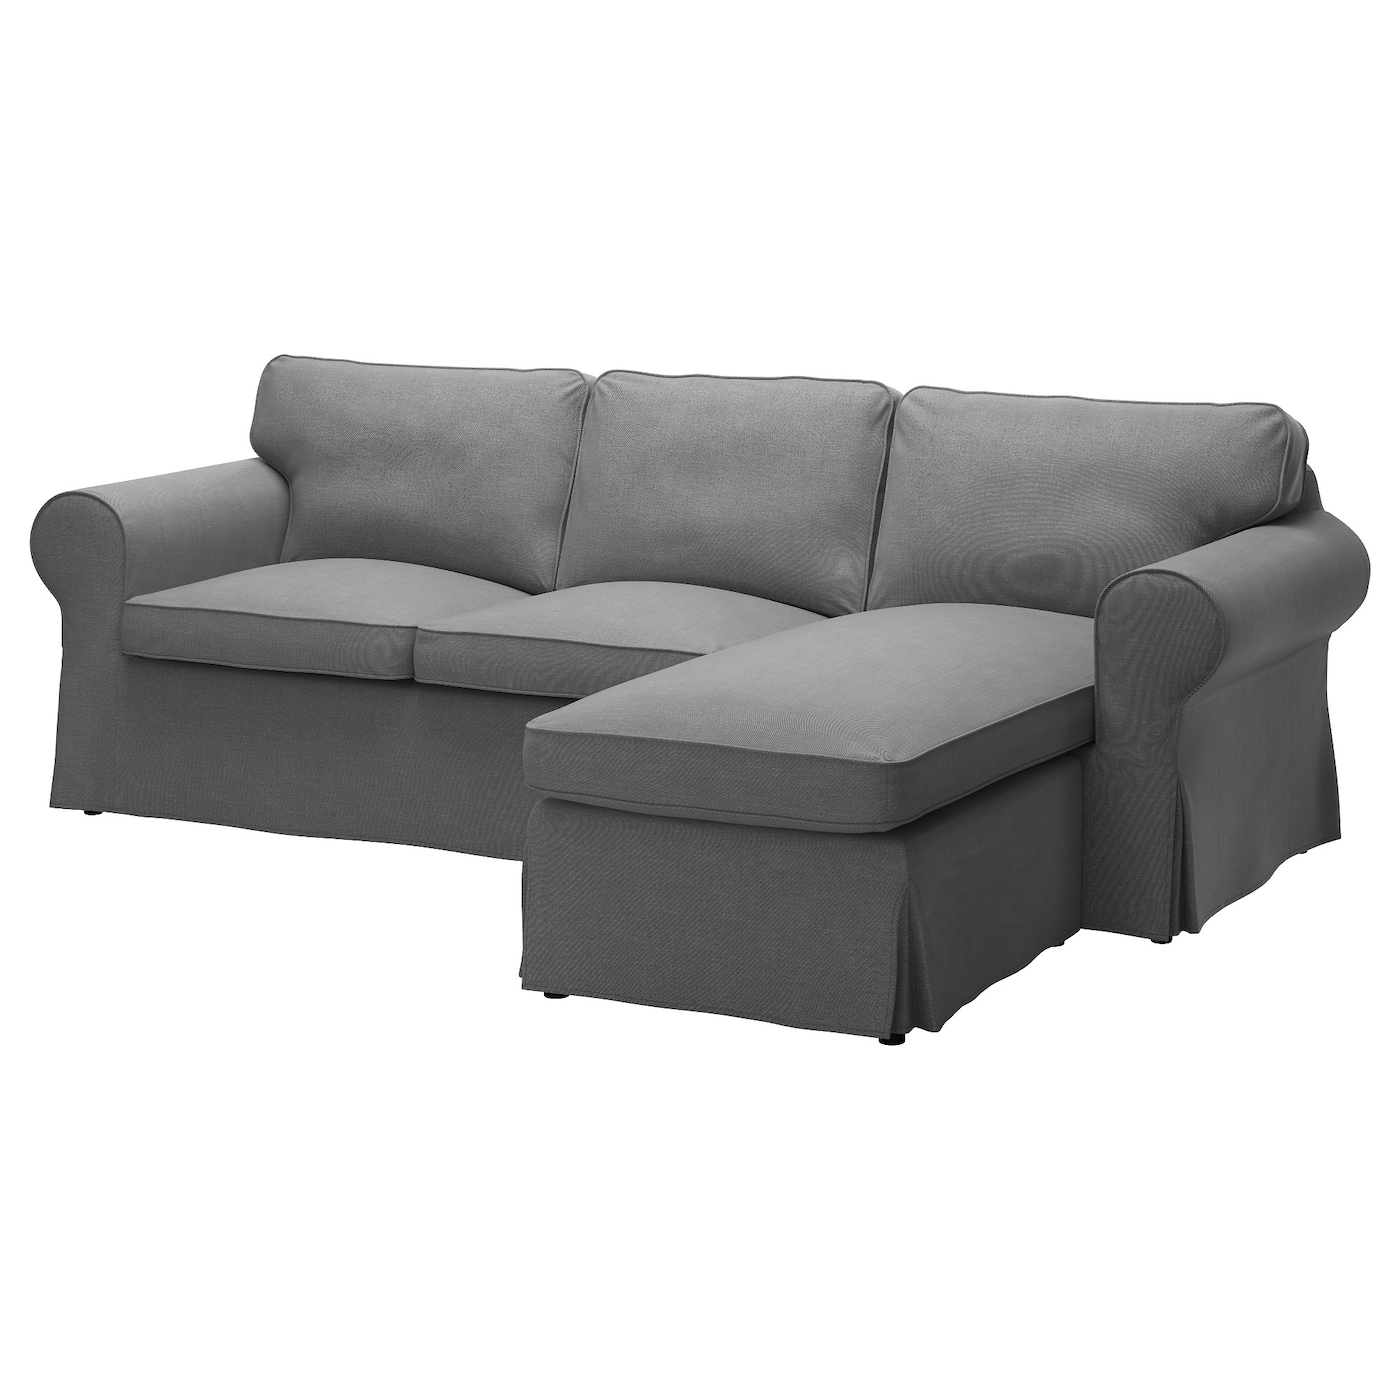 Small Sofa & 2 Seater Sofa